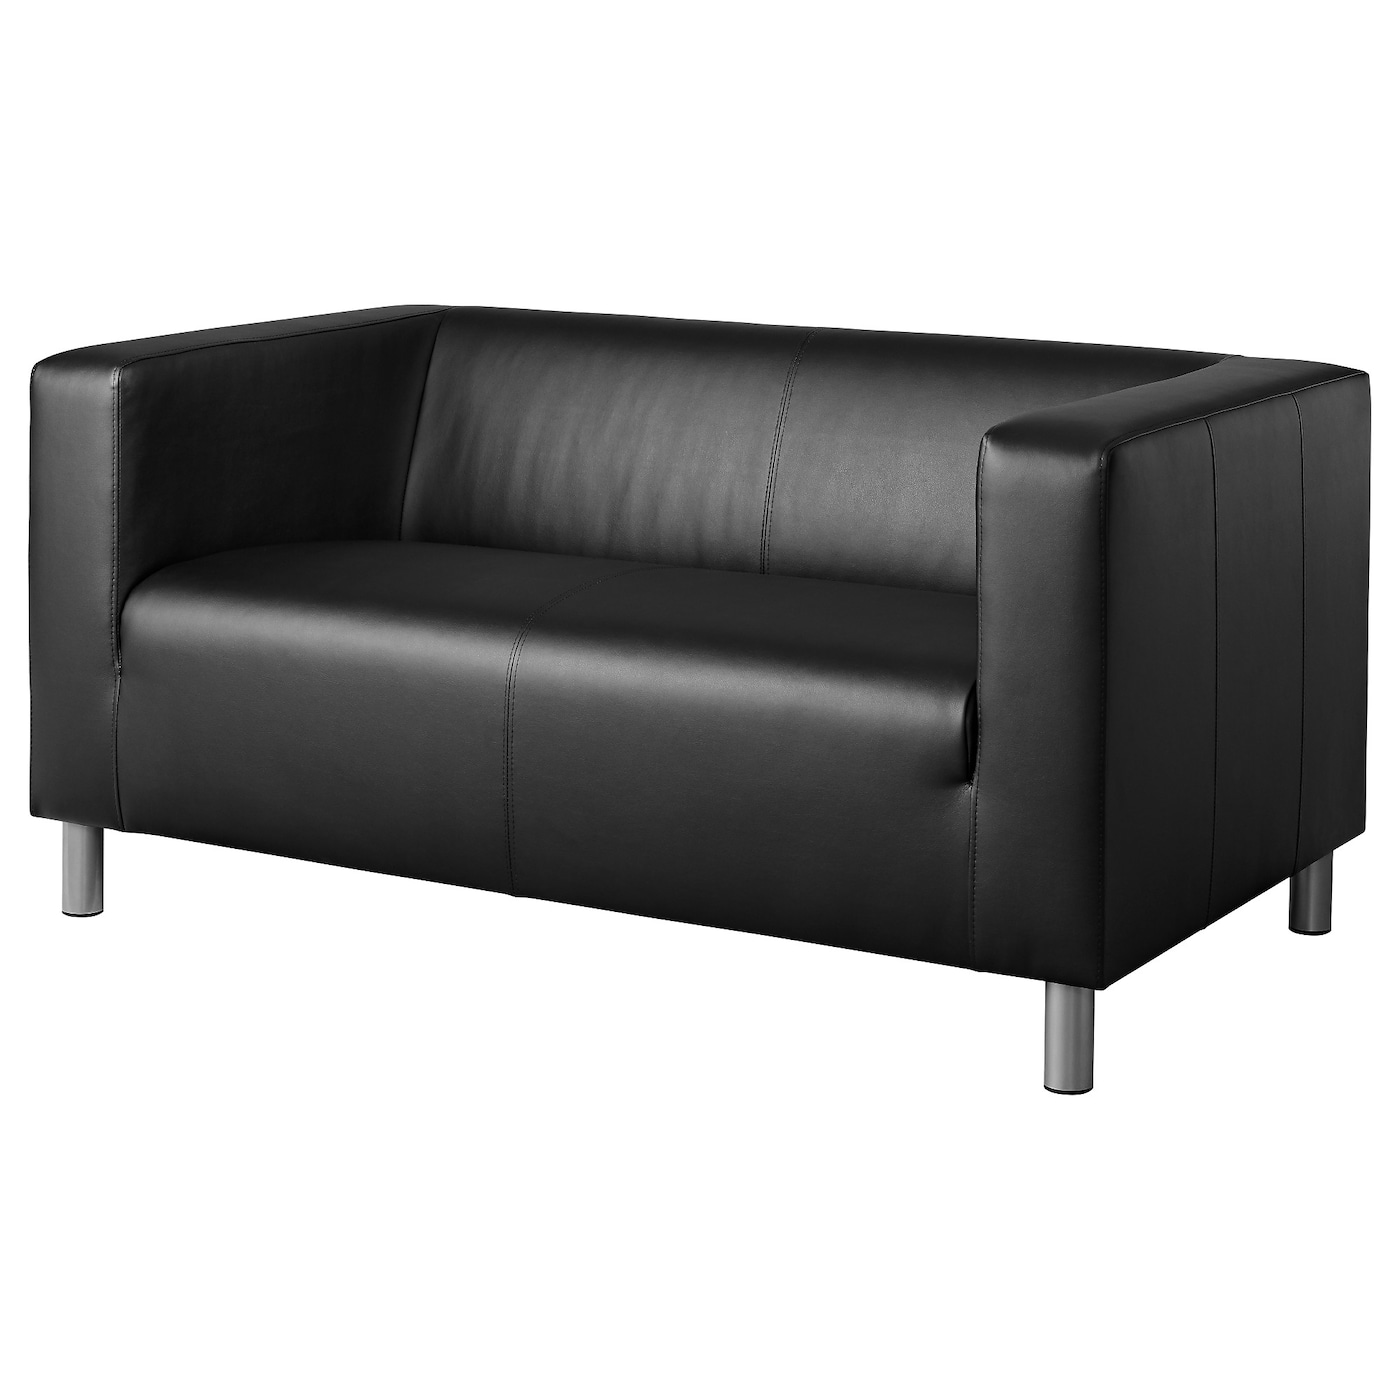 Ikea Sofa 2 Seater | King Sofa